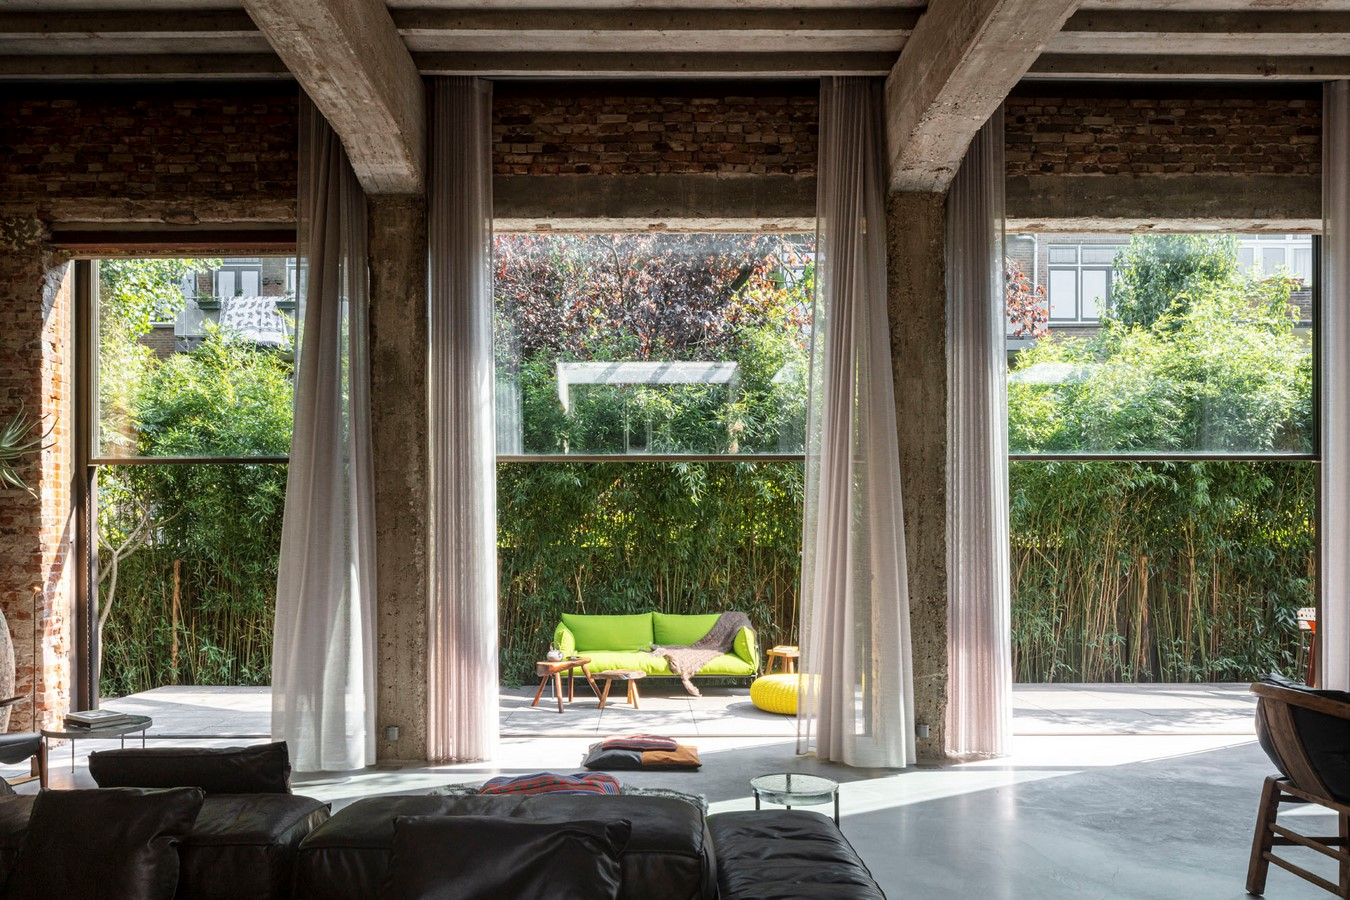 Abandoned 1940s Sports Building converted into New Villa With Naked Brick Walls by MASA Architects - Sheet13